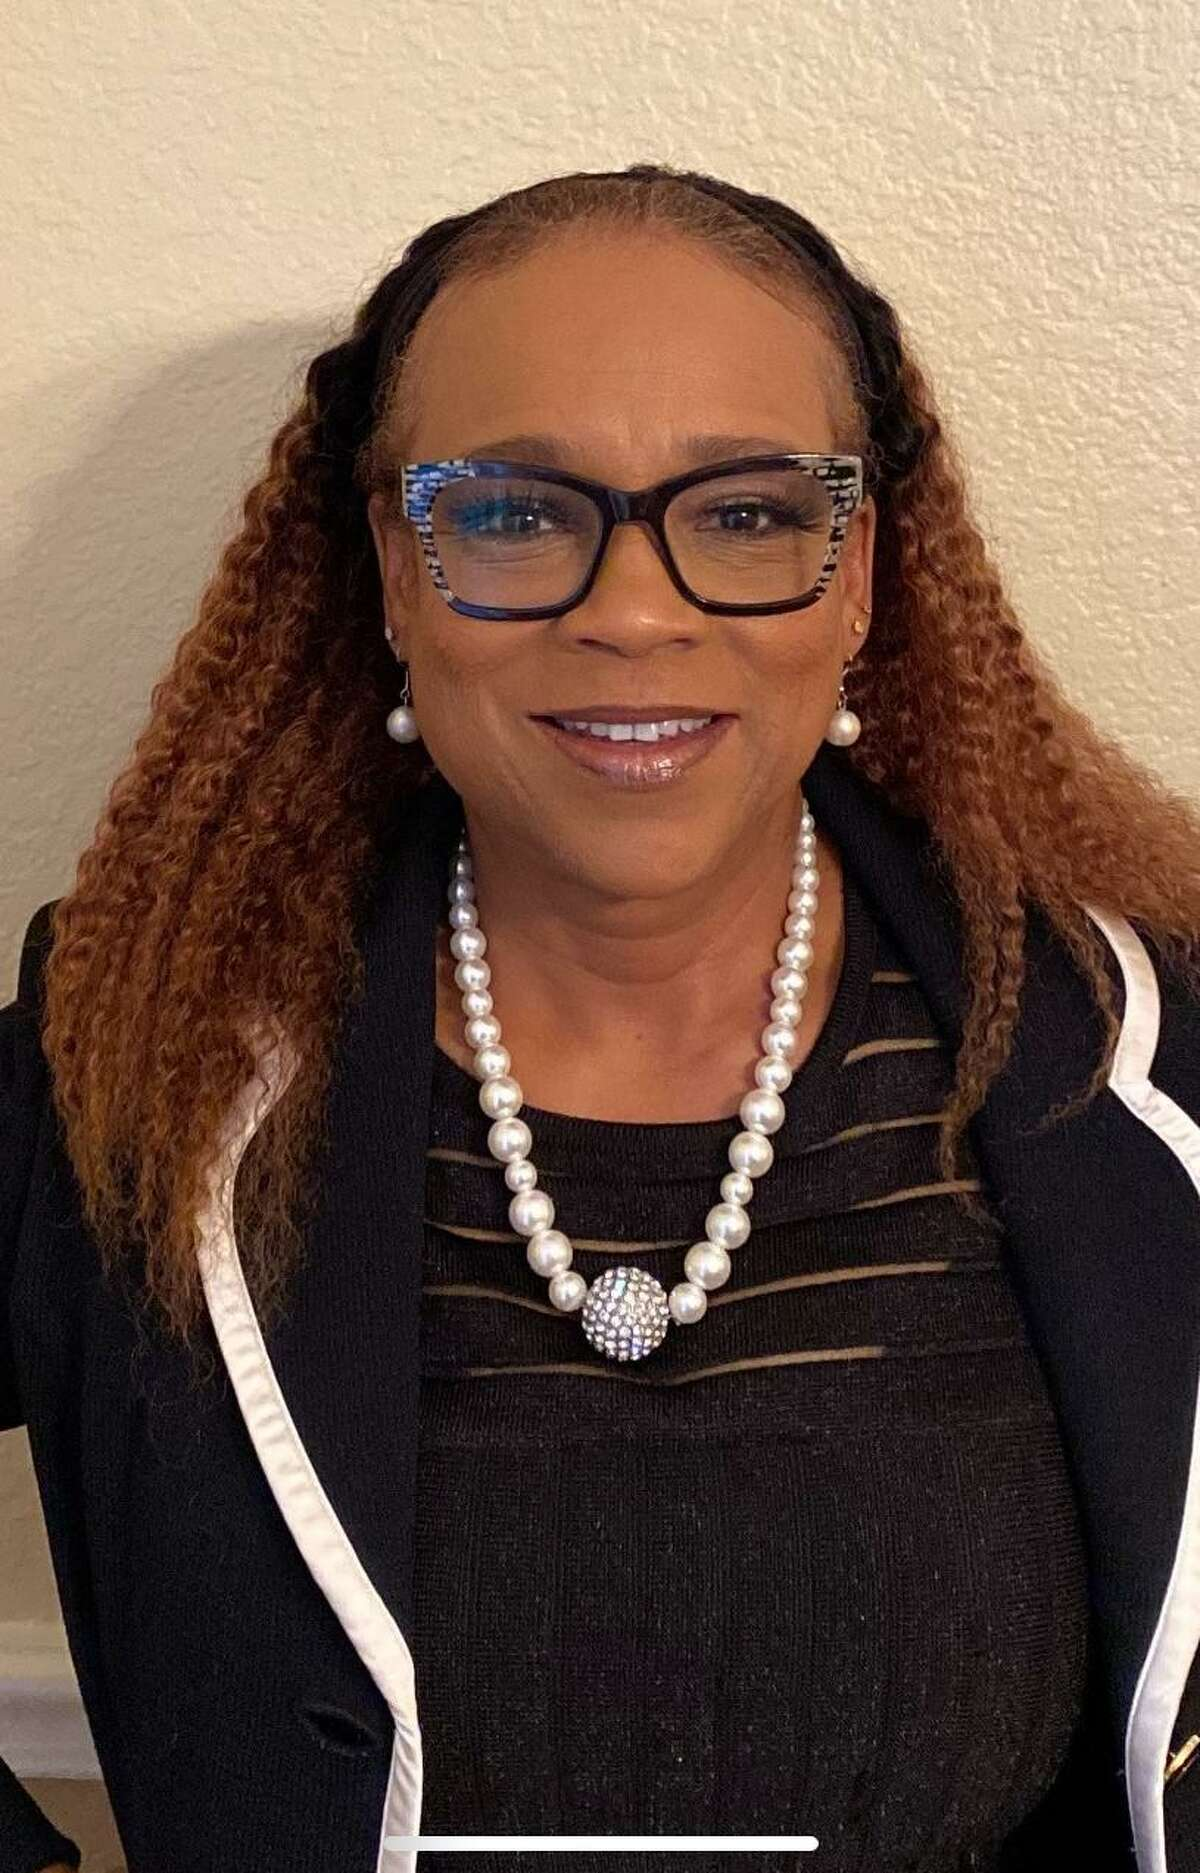 Houston ISD trustees appointed Myrna Guidry to the board's open District IX seat during a meeting on Dec. 8, 2020.